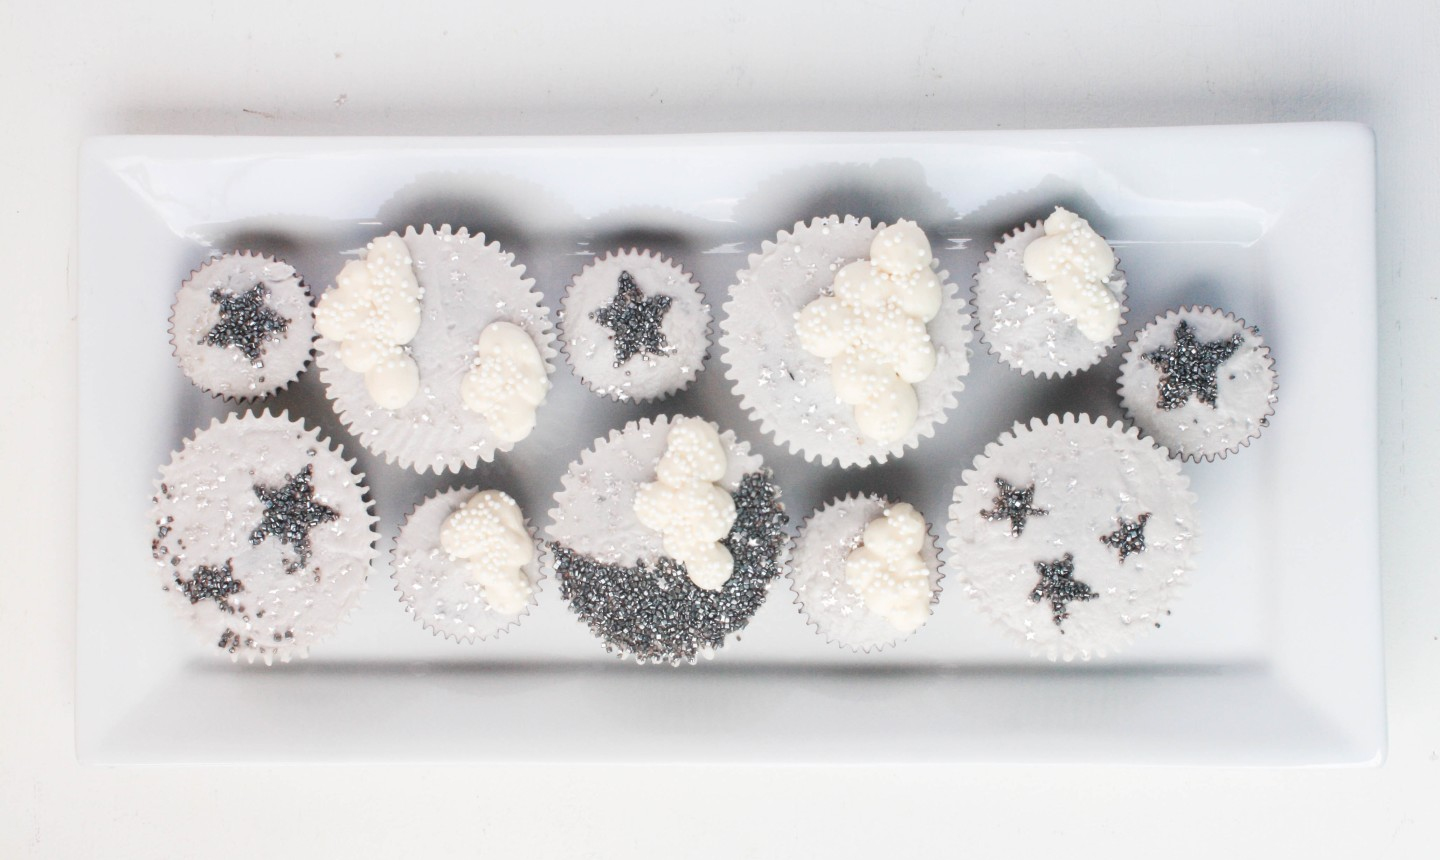 sparkly moon and stars cupcakes on a platter